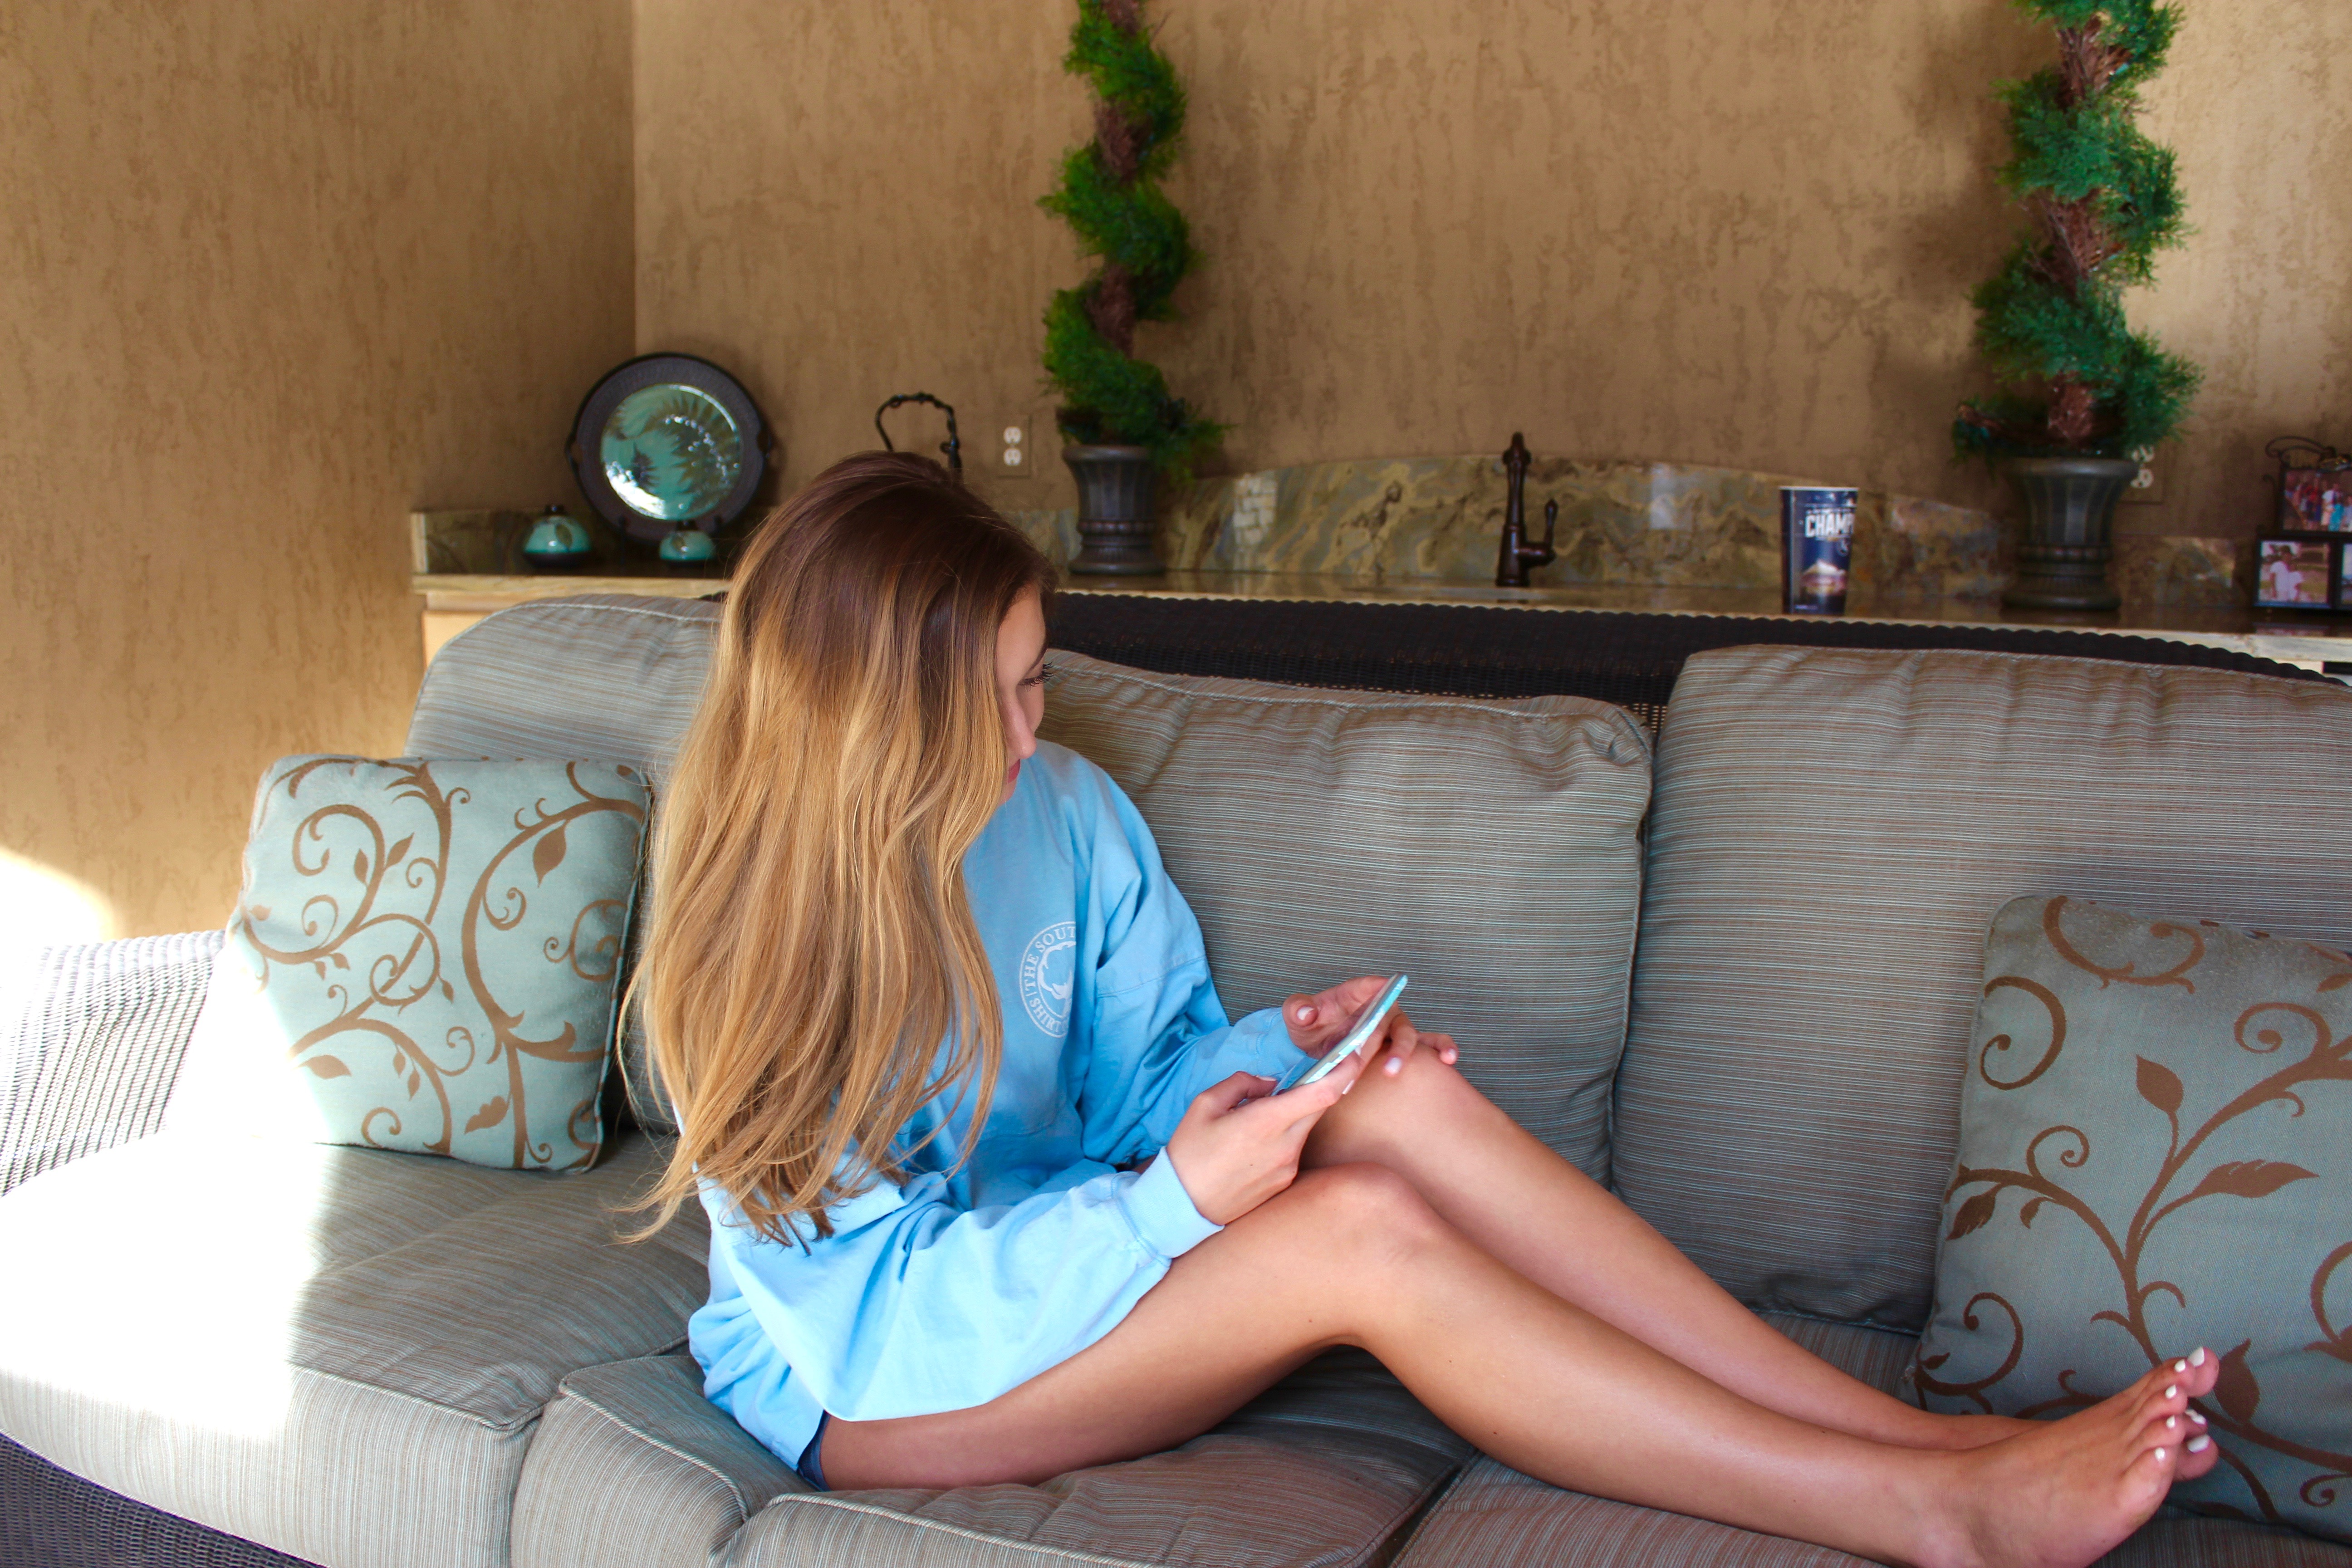 I Dyed My Hair   OOTD by Lauren Lindmark on Daily Dose of Charm